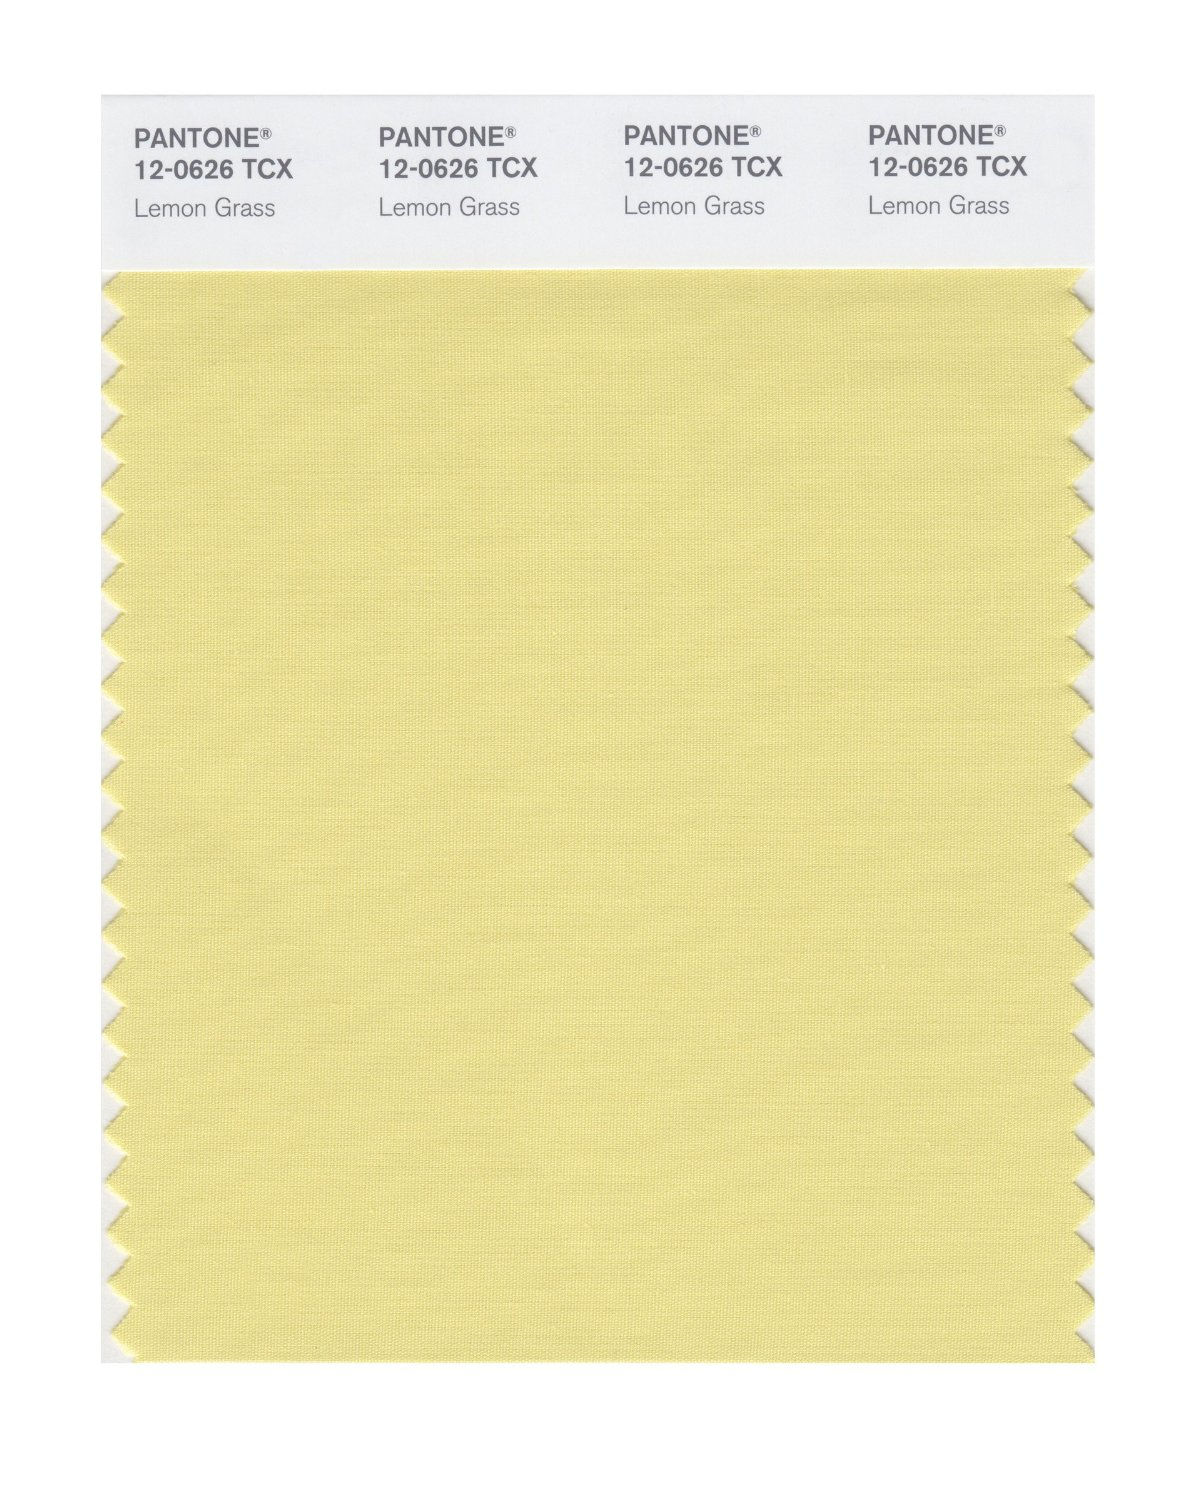 Pantone Smart Swatch 12-0626 Lemon Grass